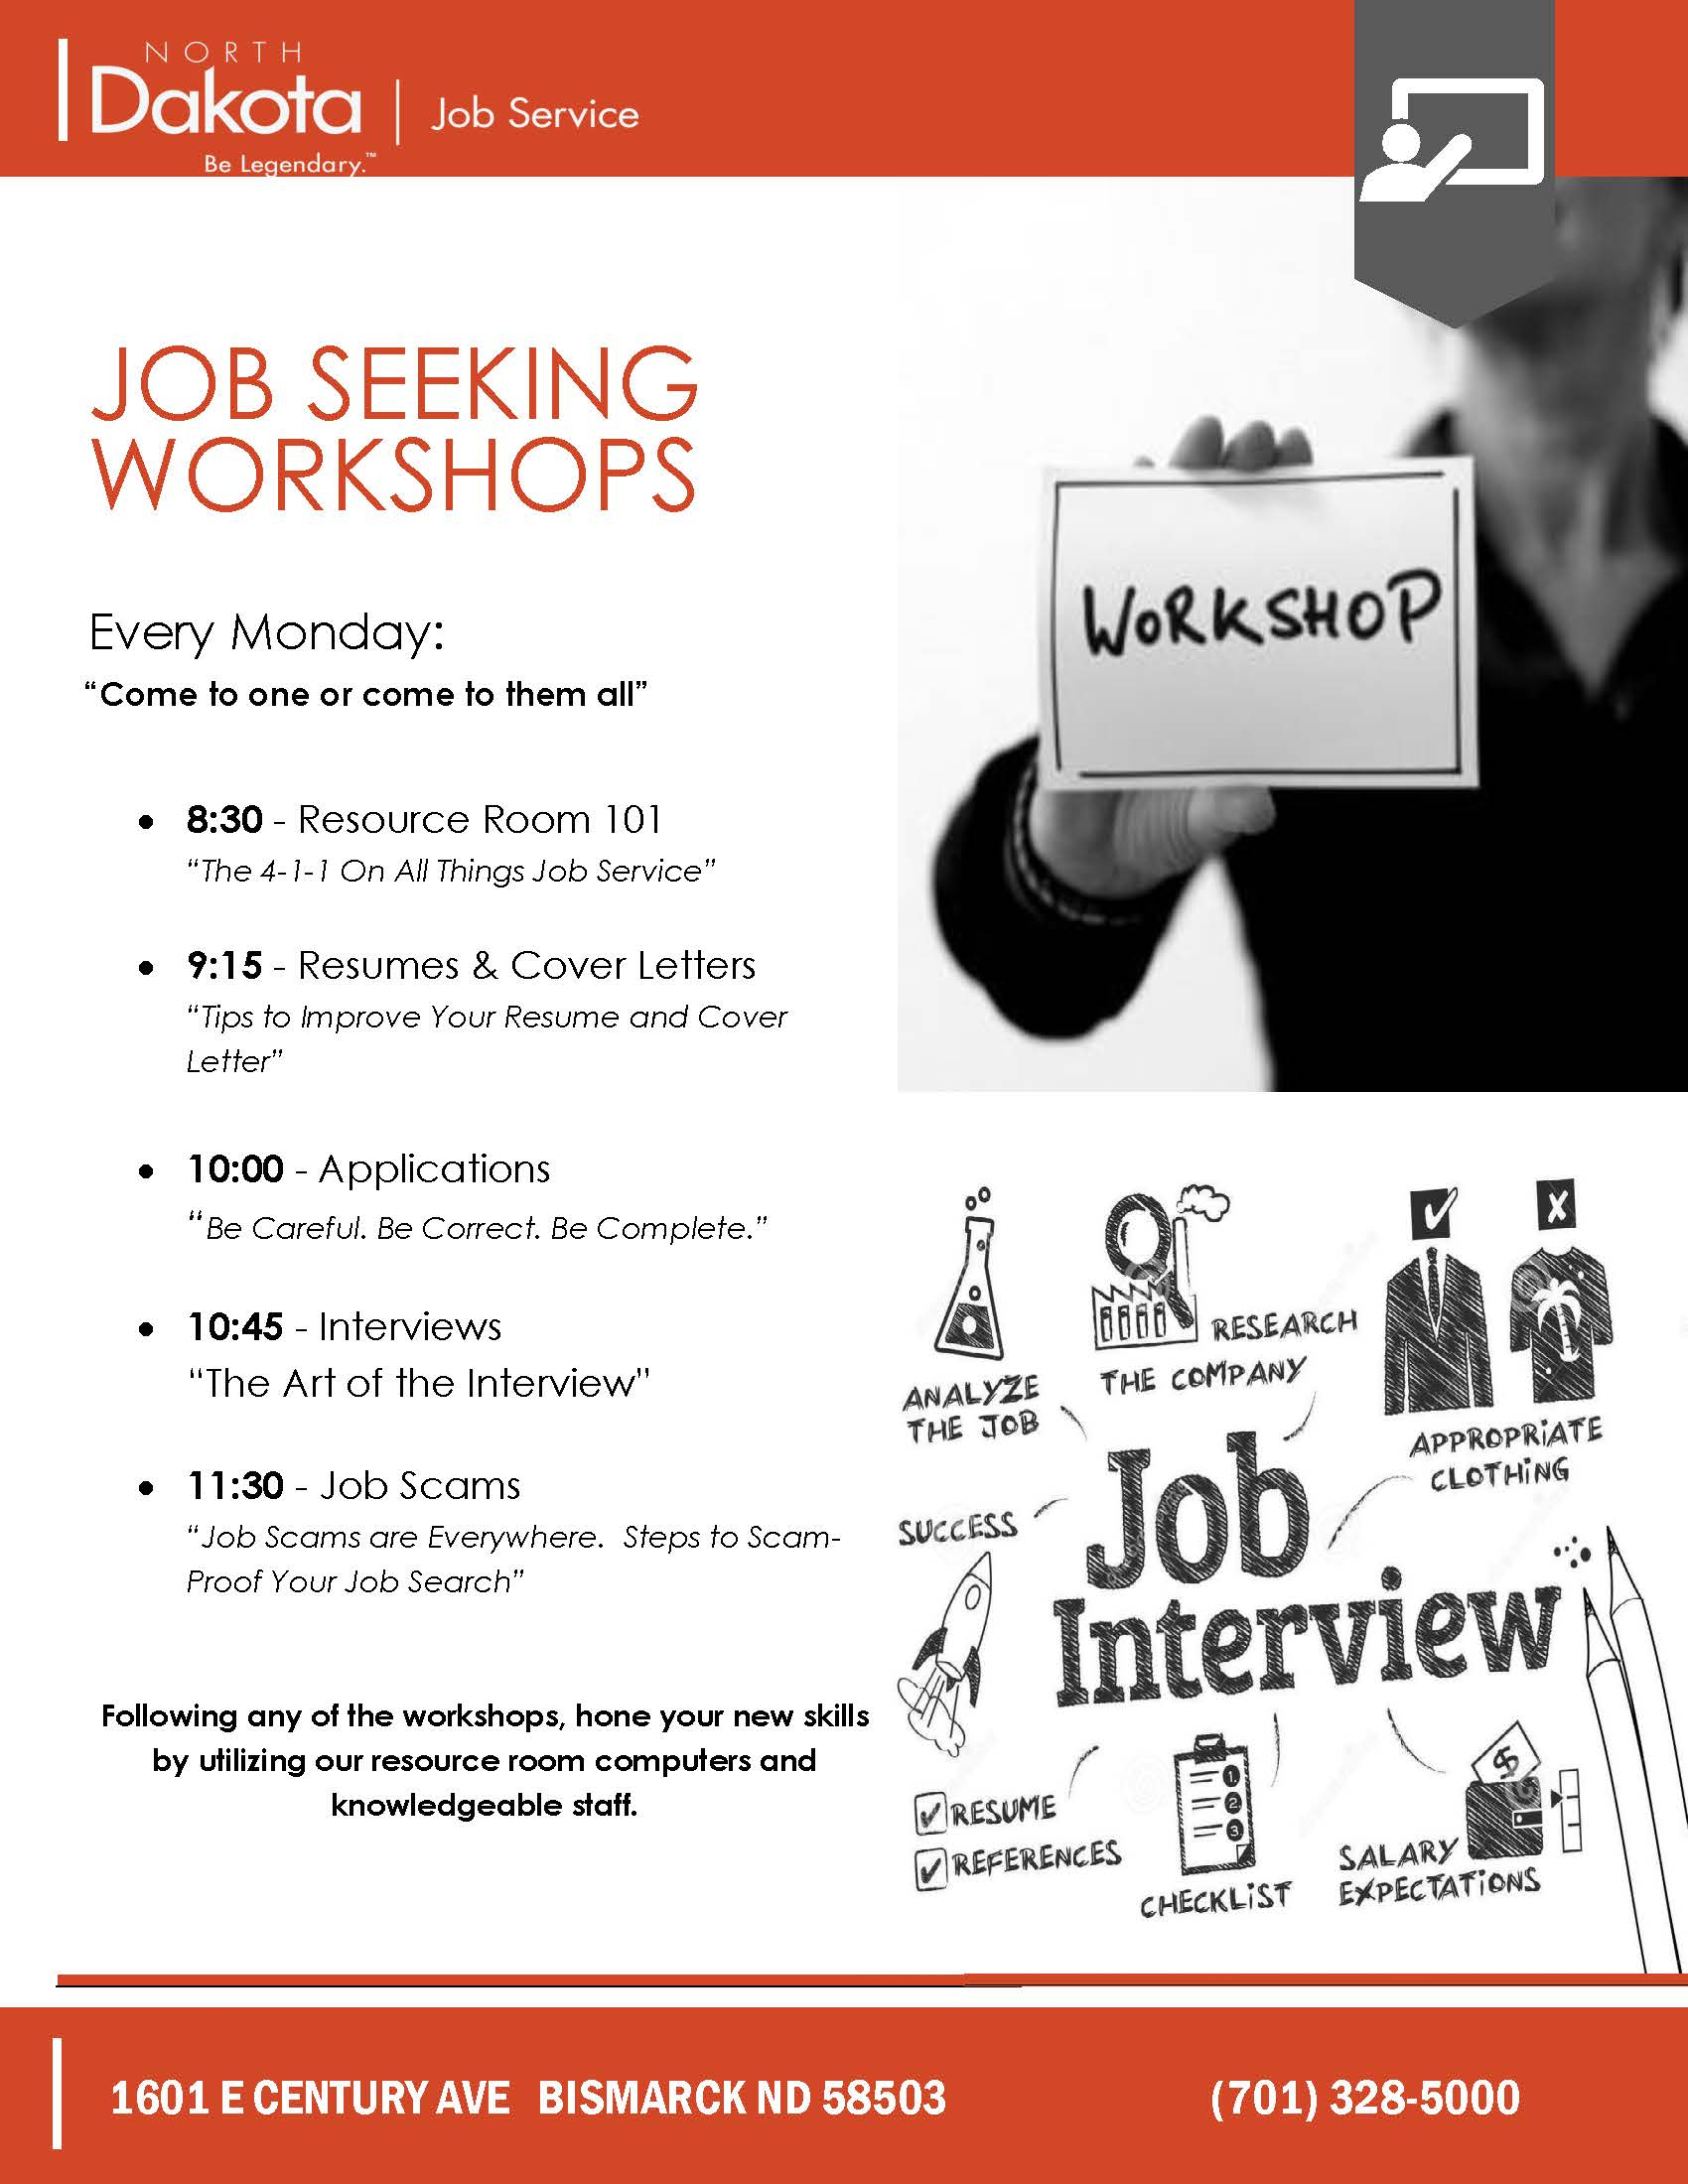 Workshops on our resource room, resumes and cover letters, applications, interviews and job scams